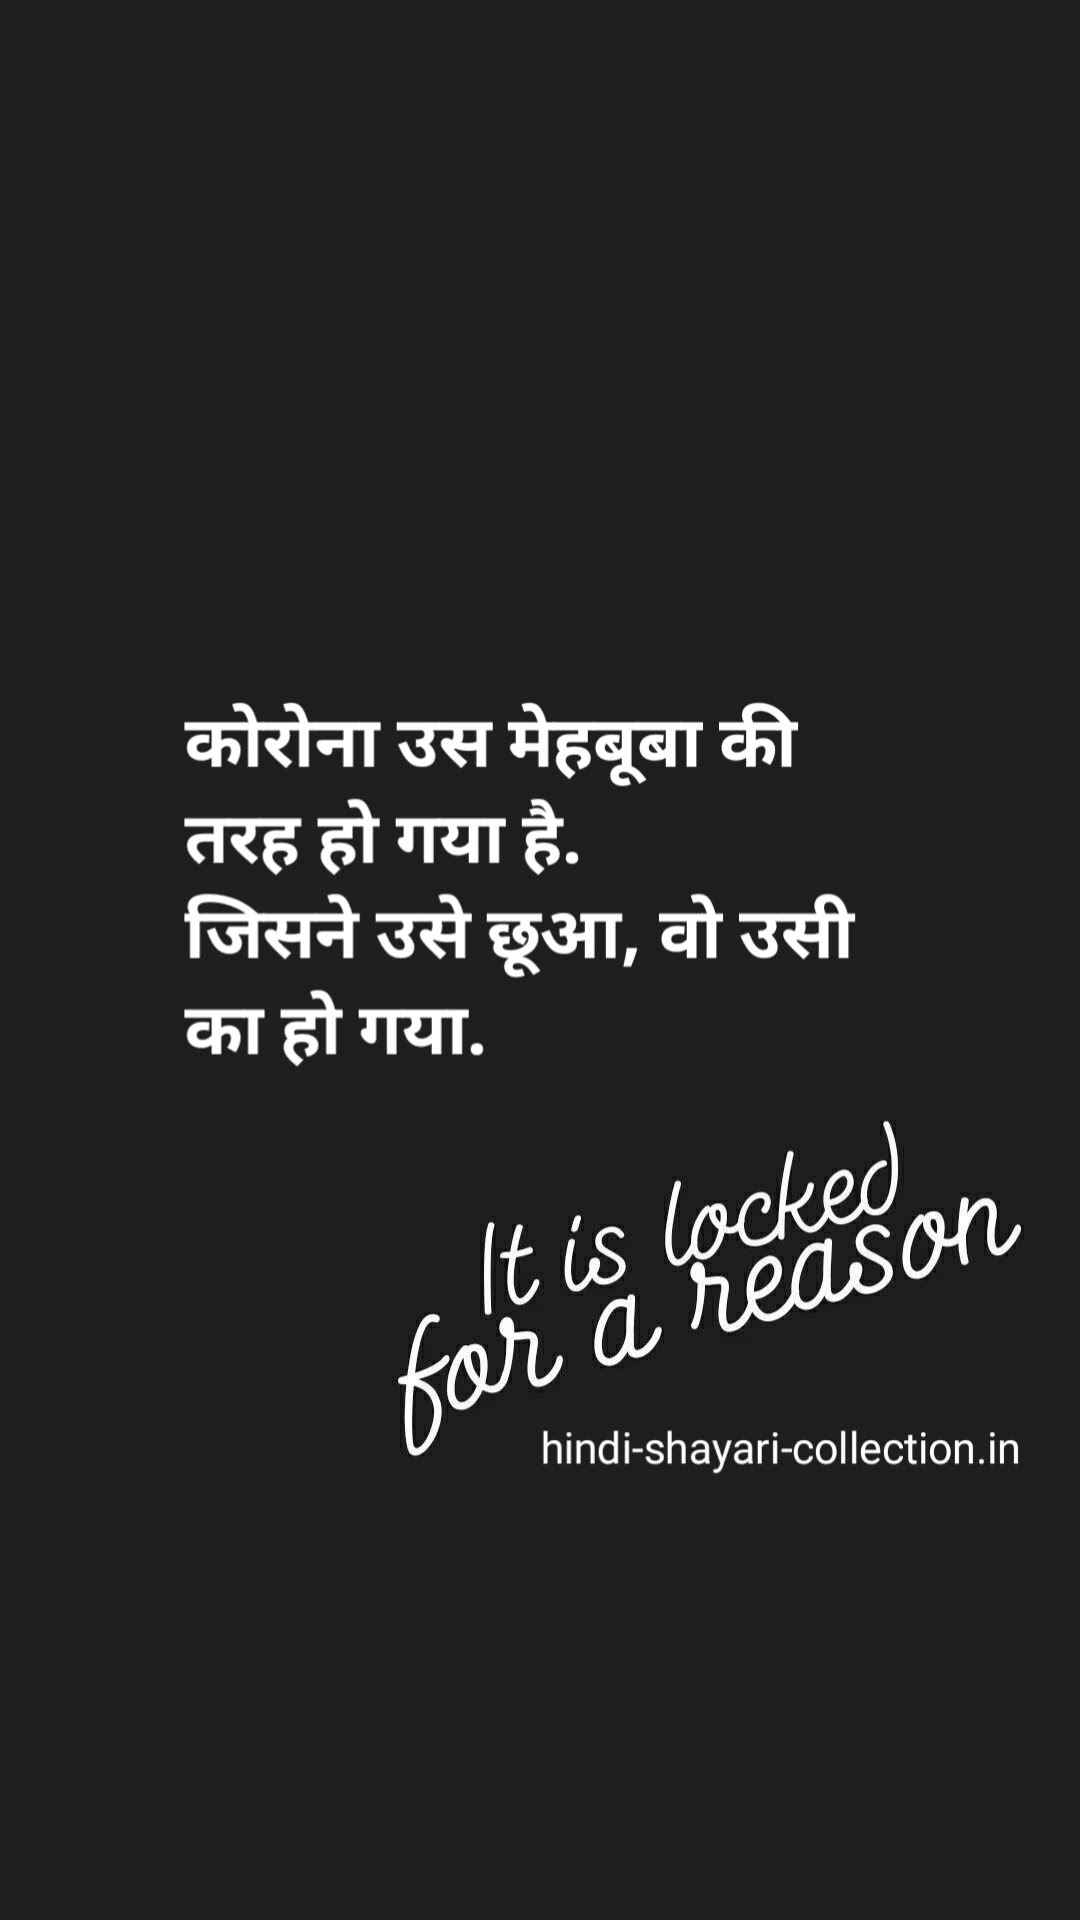 lockdown Shayari , Corona Quotes In Hindi , lockdown shayari dp, corona dp,